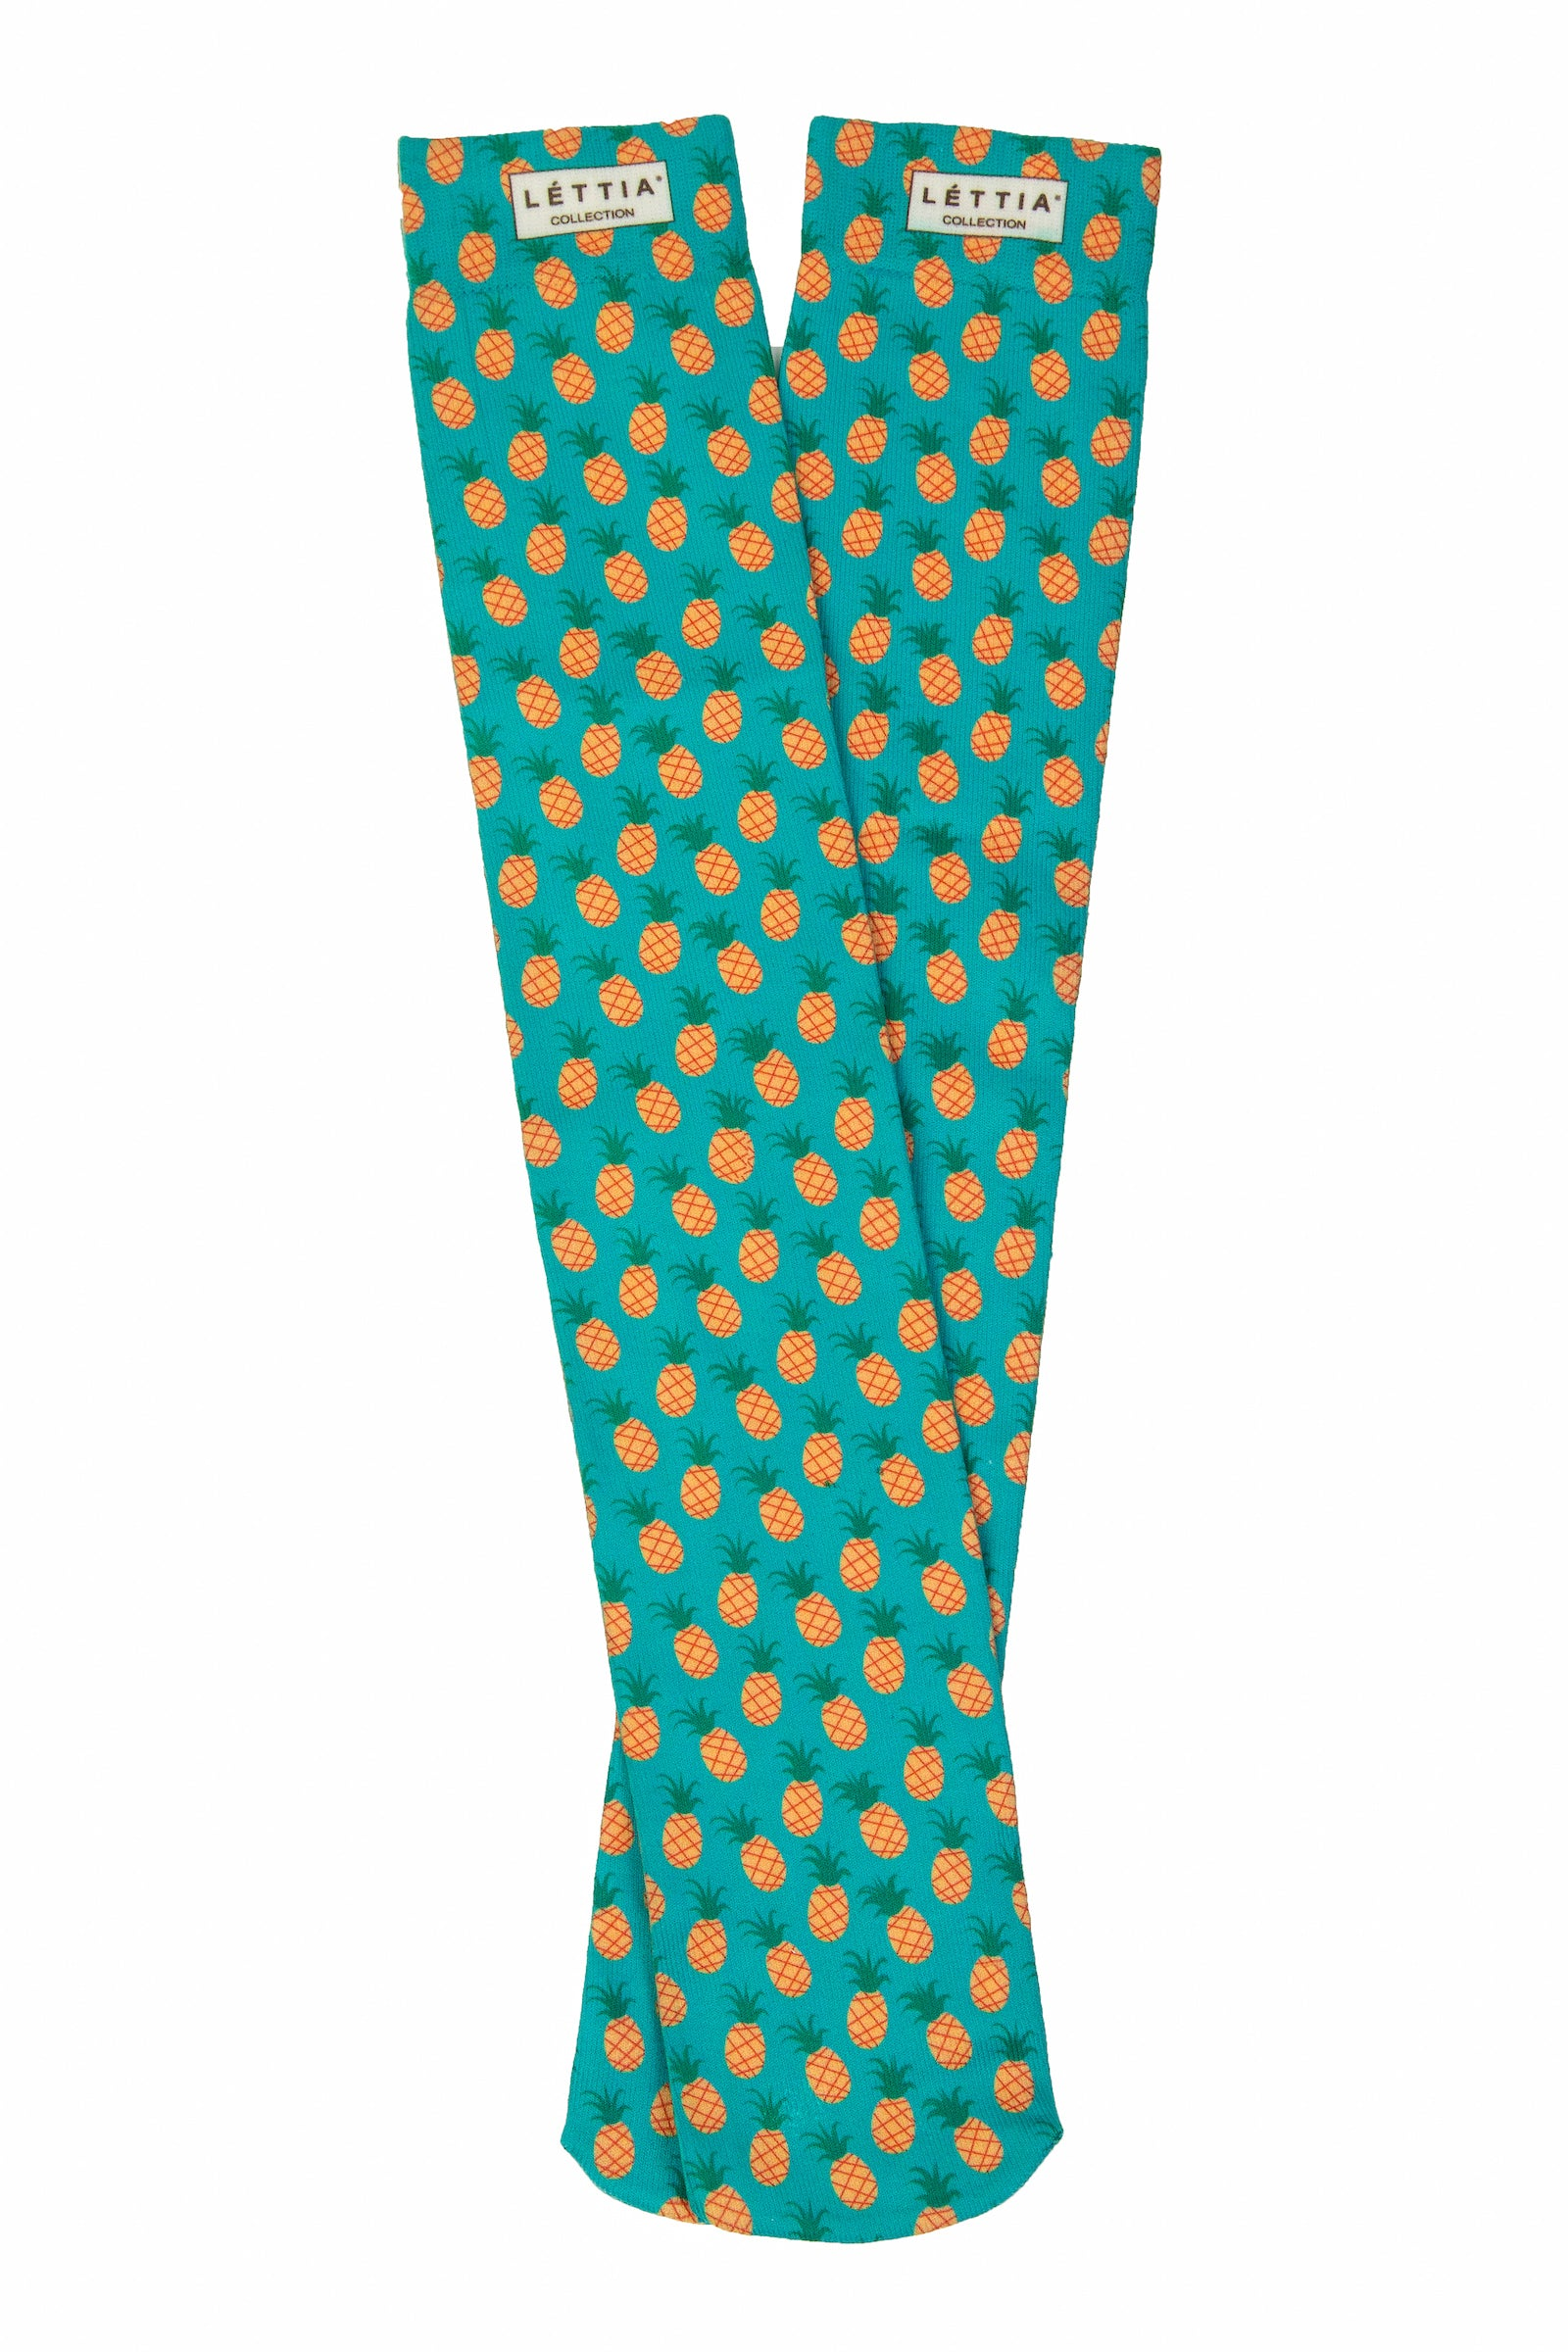 Lettia Adult Pineapple Boot Socks - 3 Pack - Breeches.com